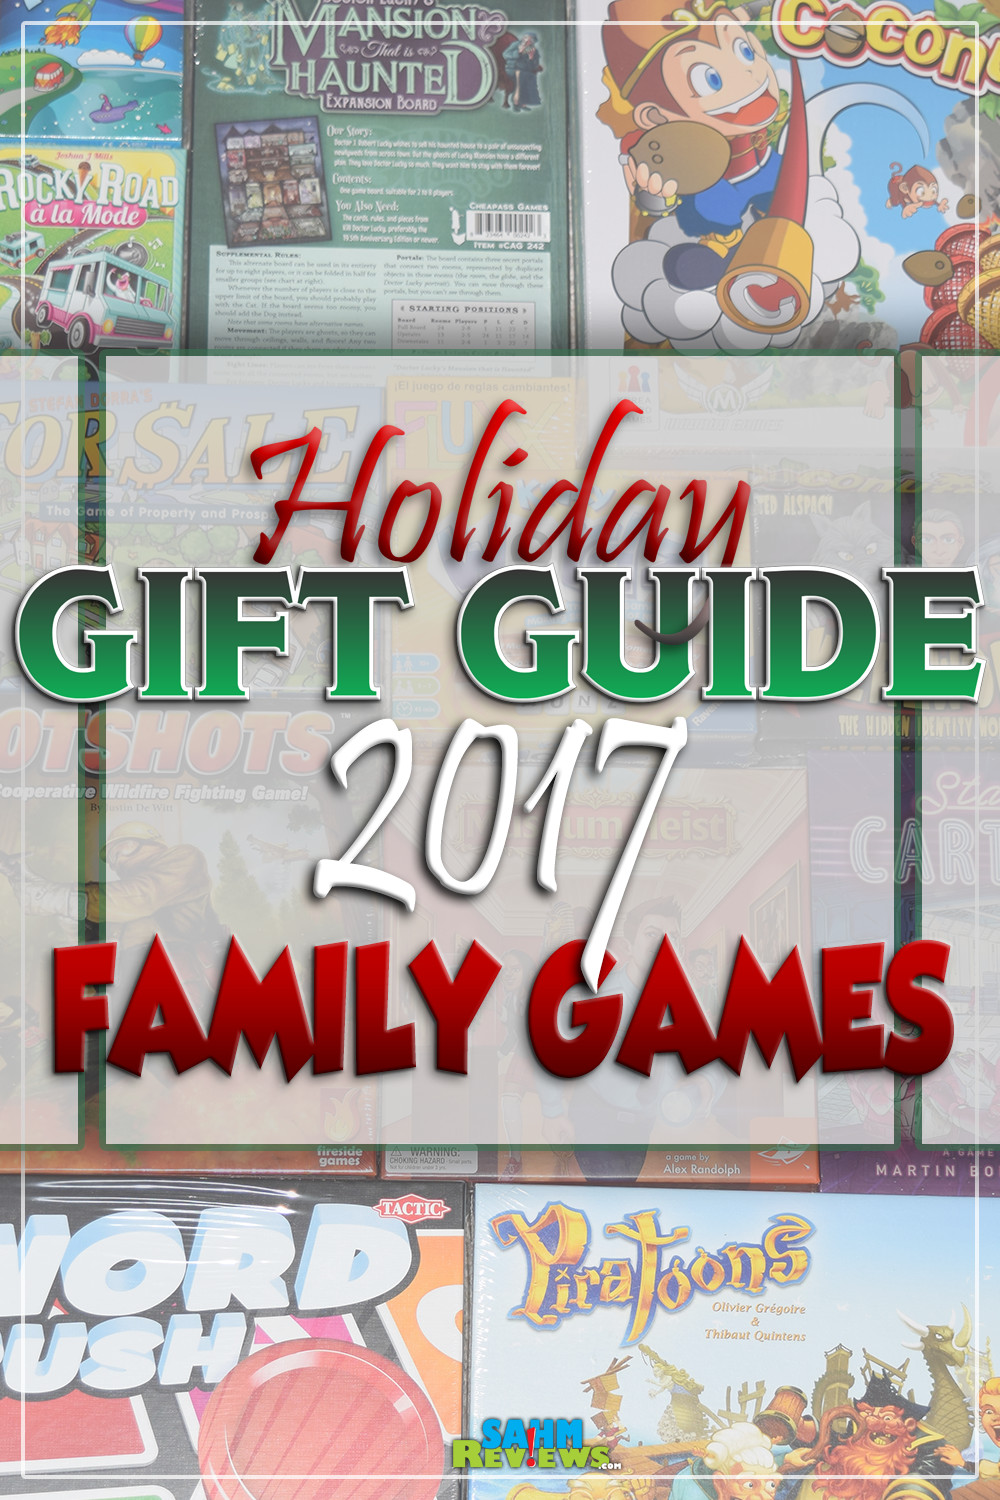 There aren't many things more fun than sitting down with family and playing a great game. Here's a handful of ideas in our annual Gift Guide! - SahmReviews.com